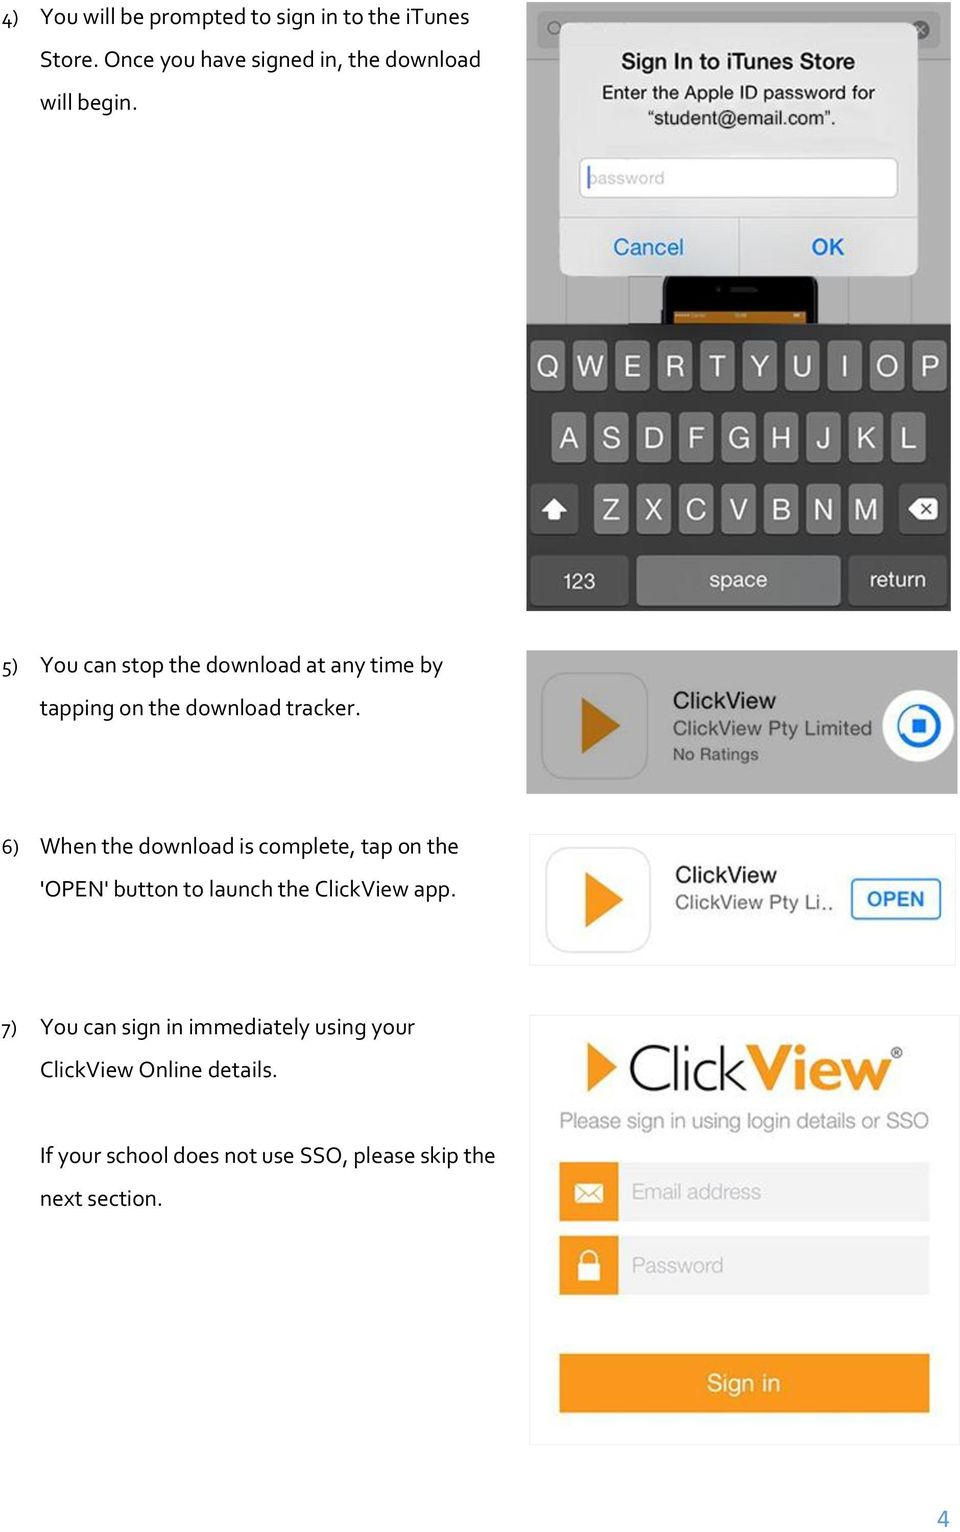 5) You can stop the download at any time by tapping on the download tracker.